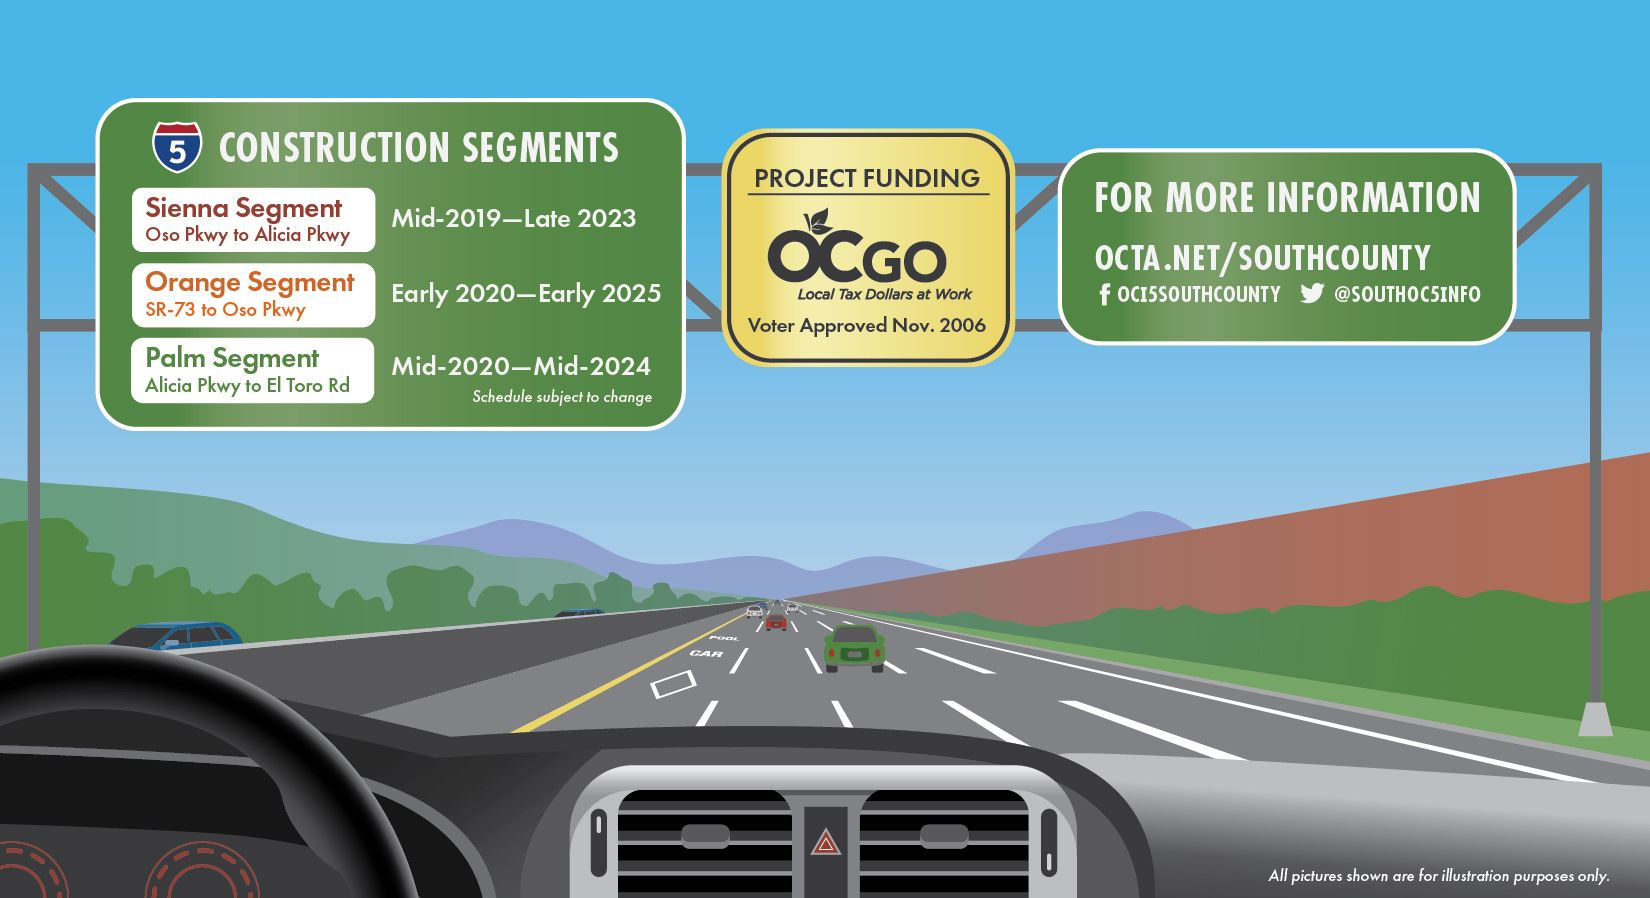 Flyer for the OCTA South County Improvements project for the interstate 5 freeway